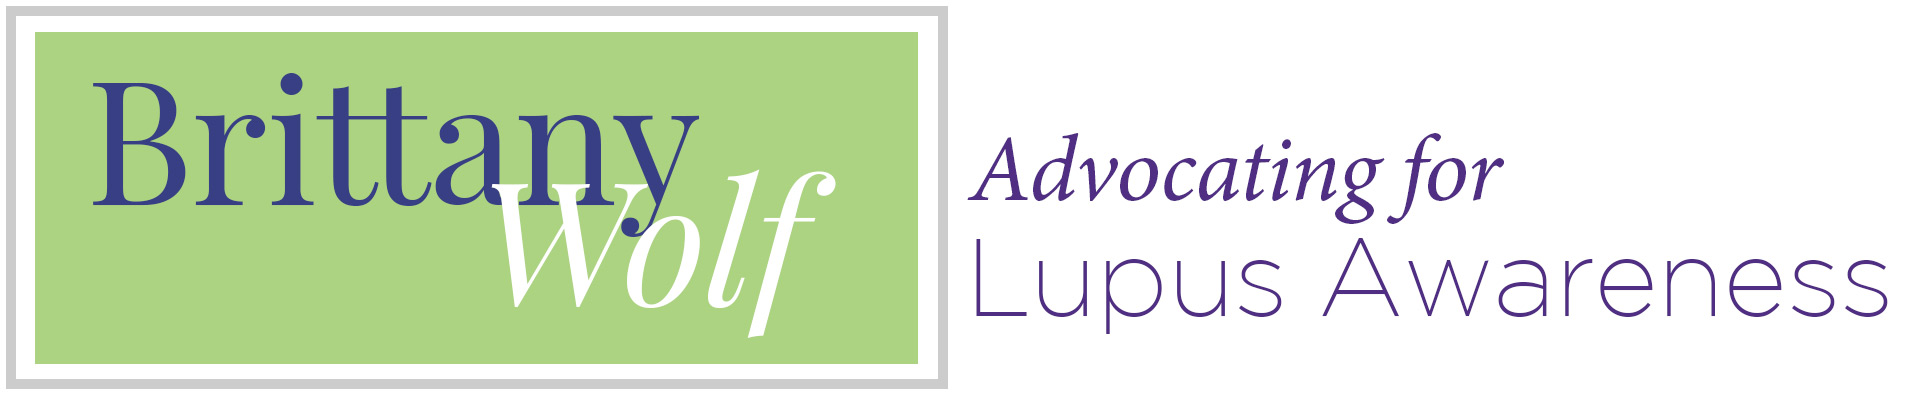 Brittany Wolf, Advocating for Lupus Awareness